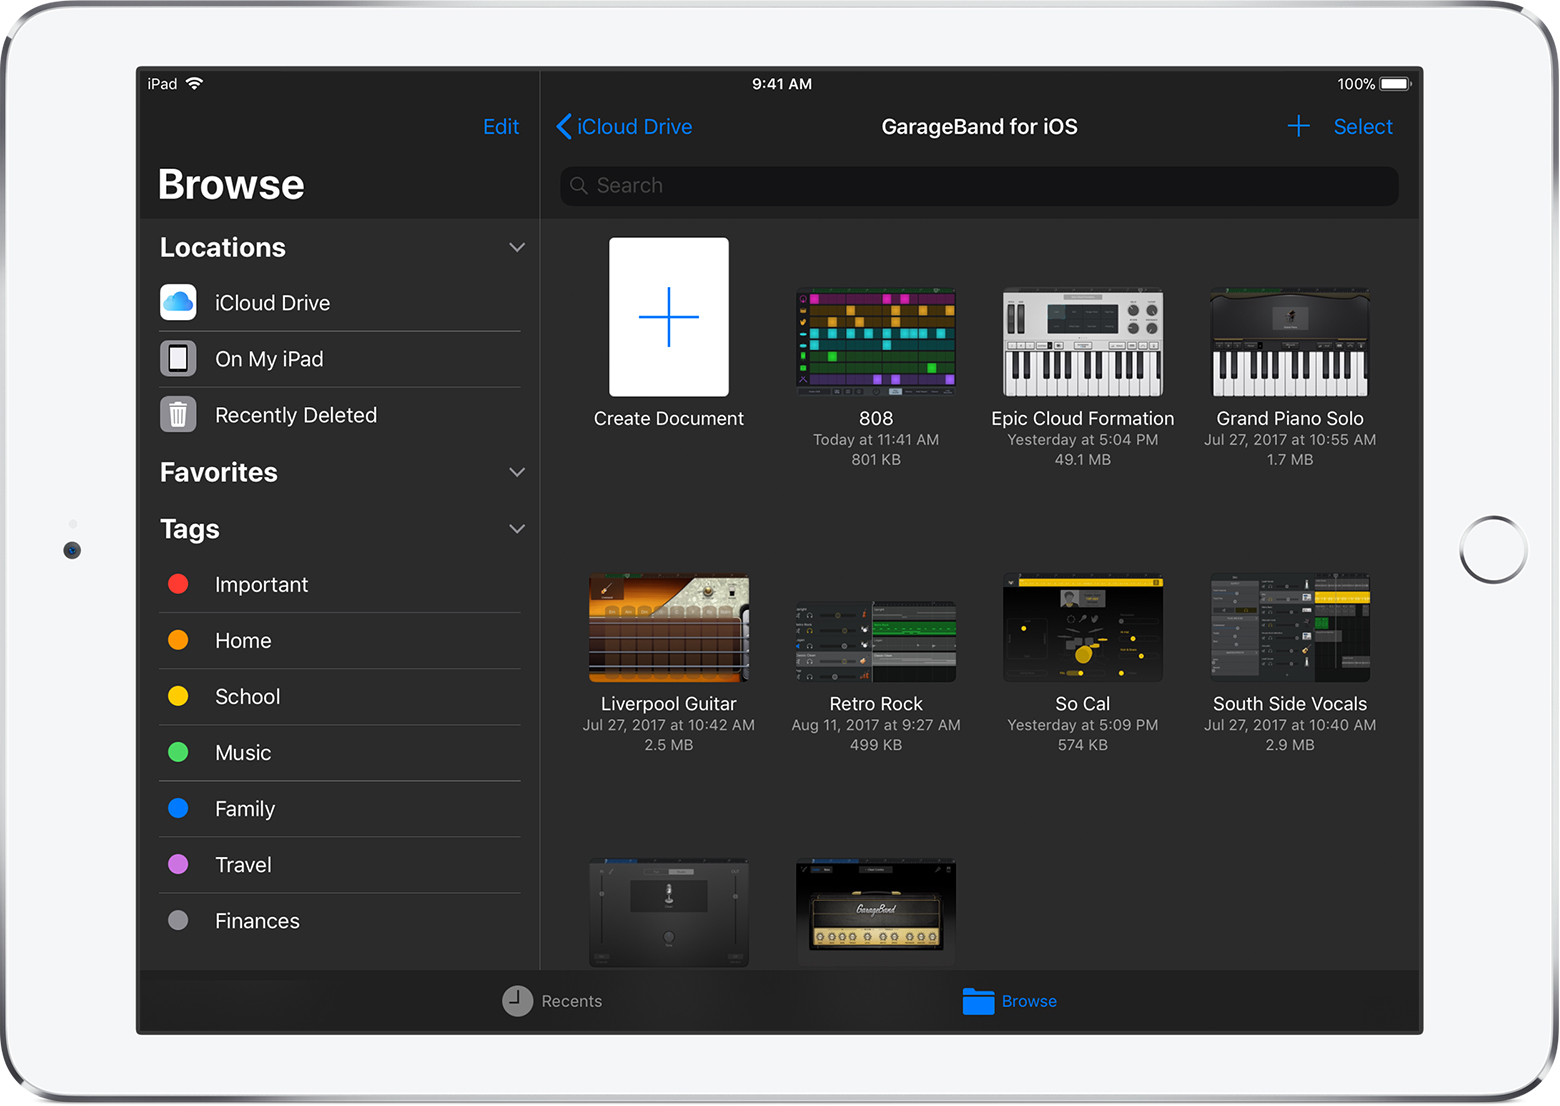 Garageband Na Pc Browse Your Garageband For Ios Songs Apple Support